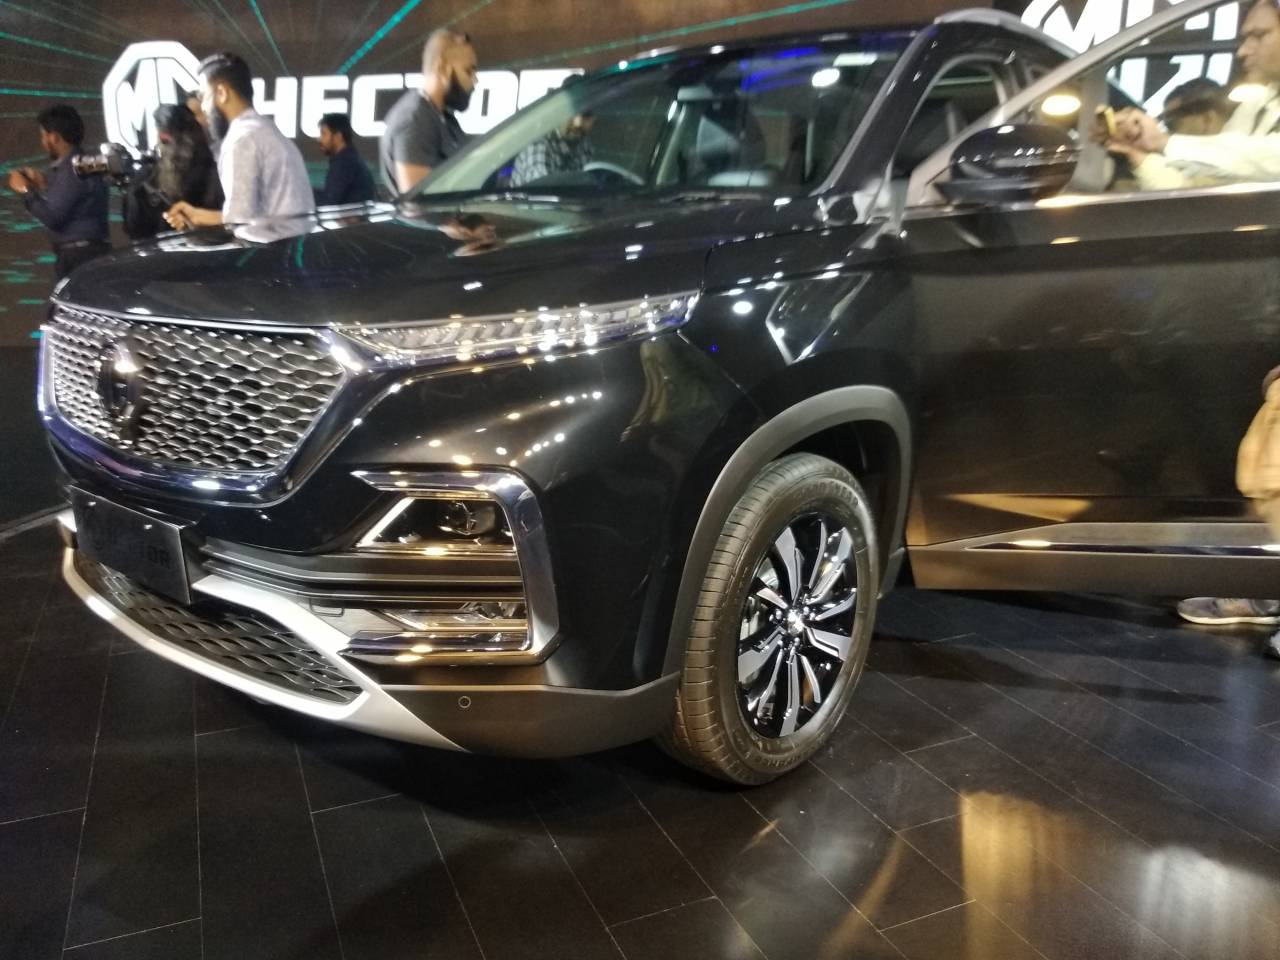 Touted by MG as India's first internet-enabled car the Hector will house a 10.4 inch head unit which will received real-time software, entertainment content and application updates making it the first car in India to get Over The Air (OTA) technology Pic courtesy: Moneycontrol